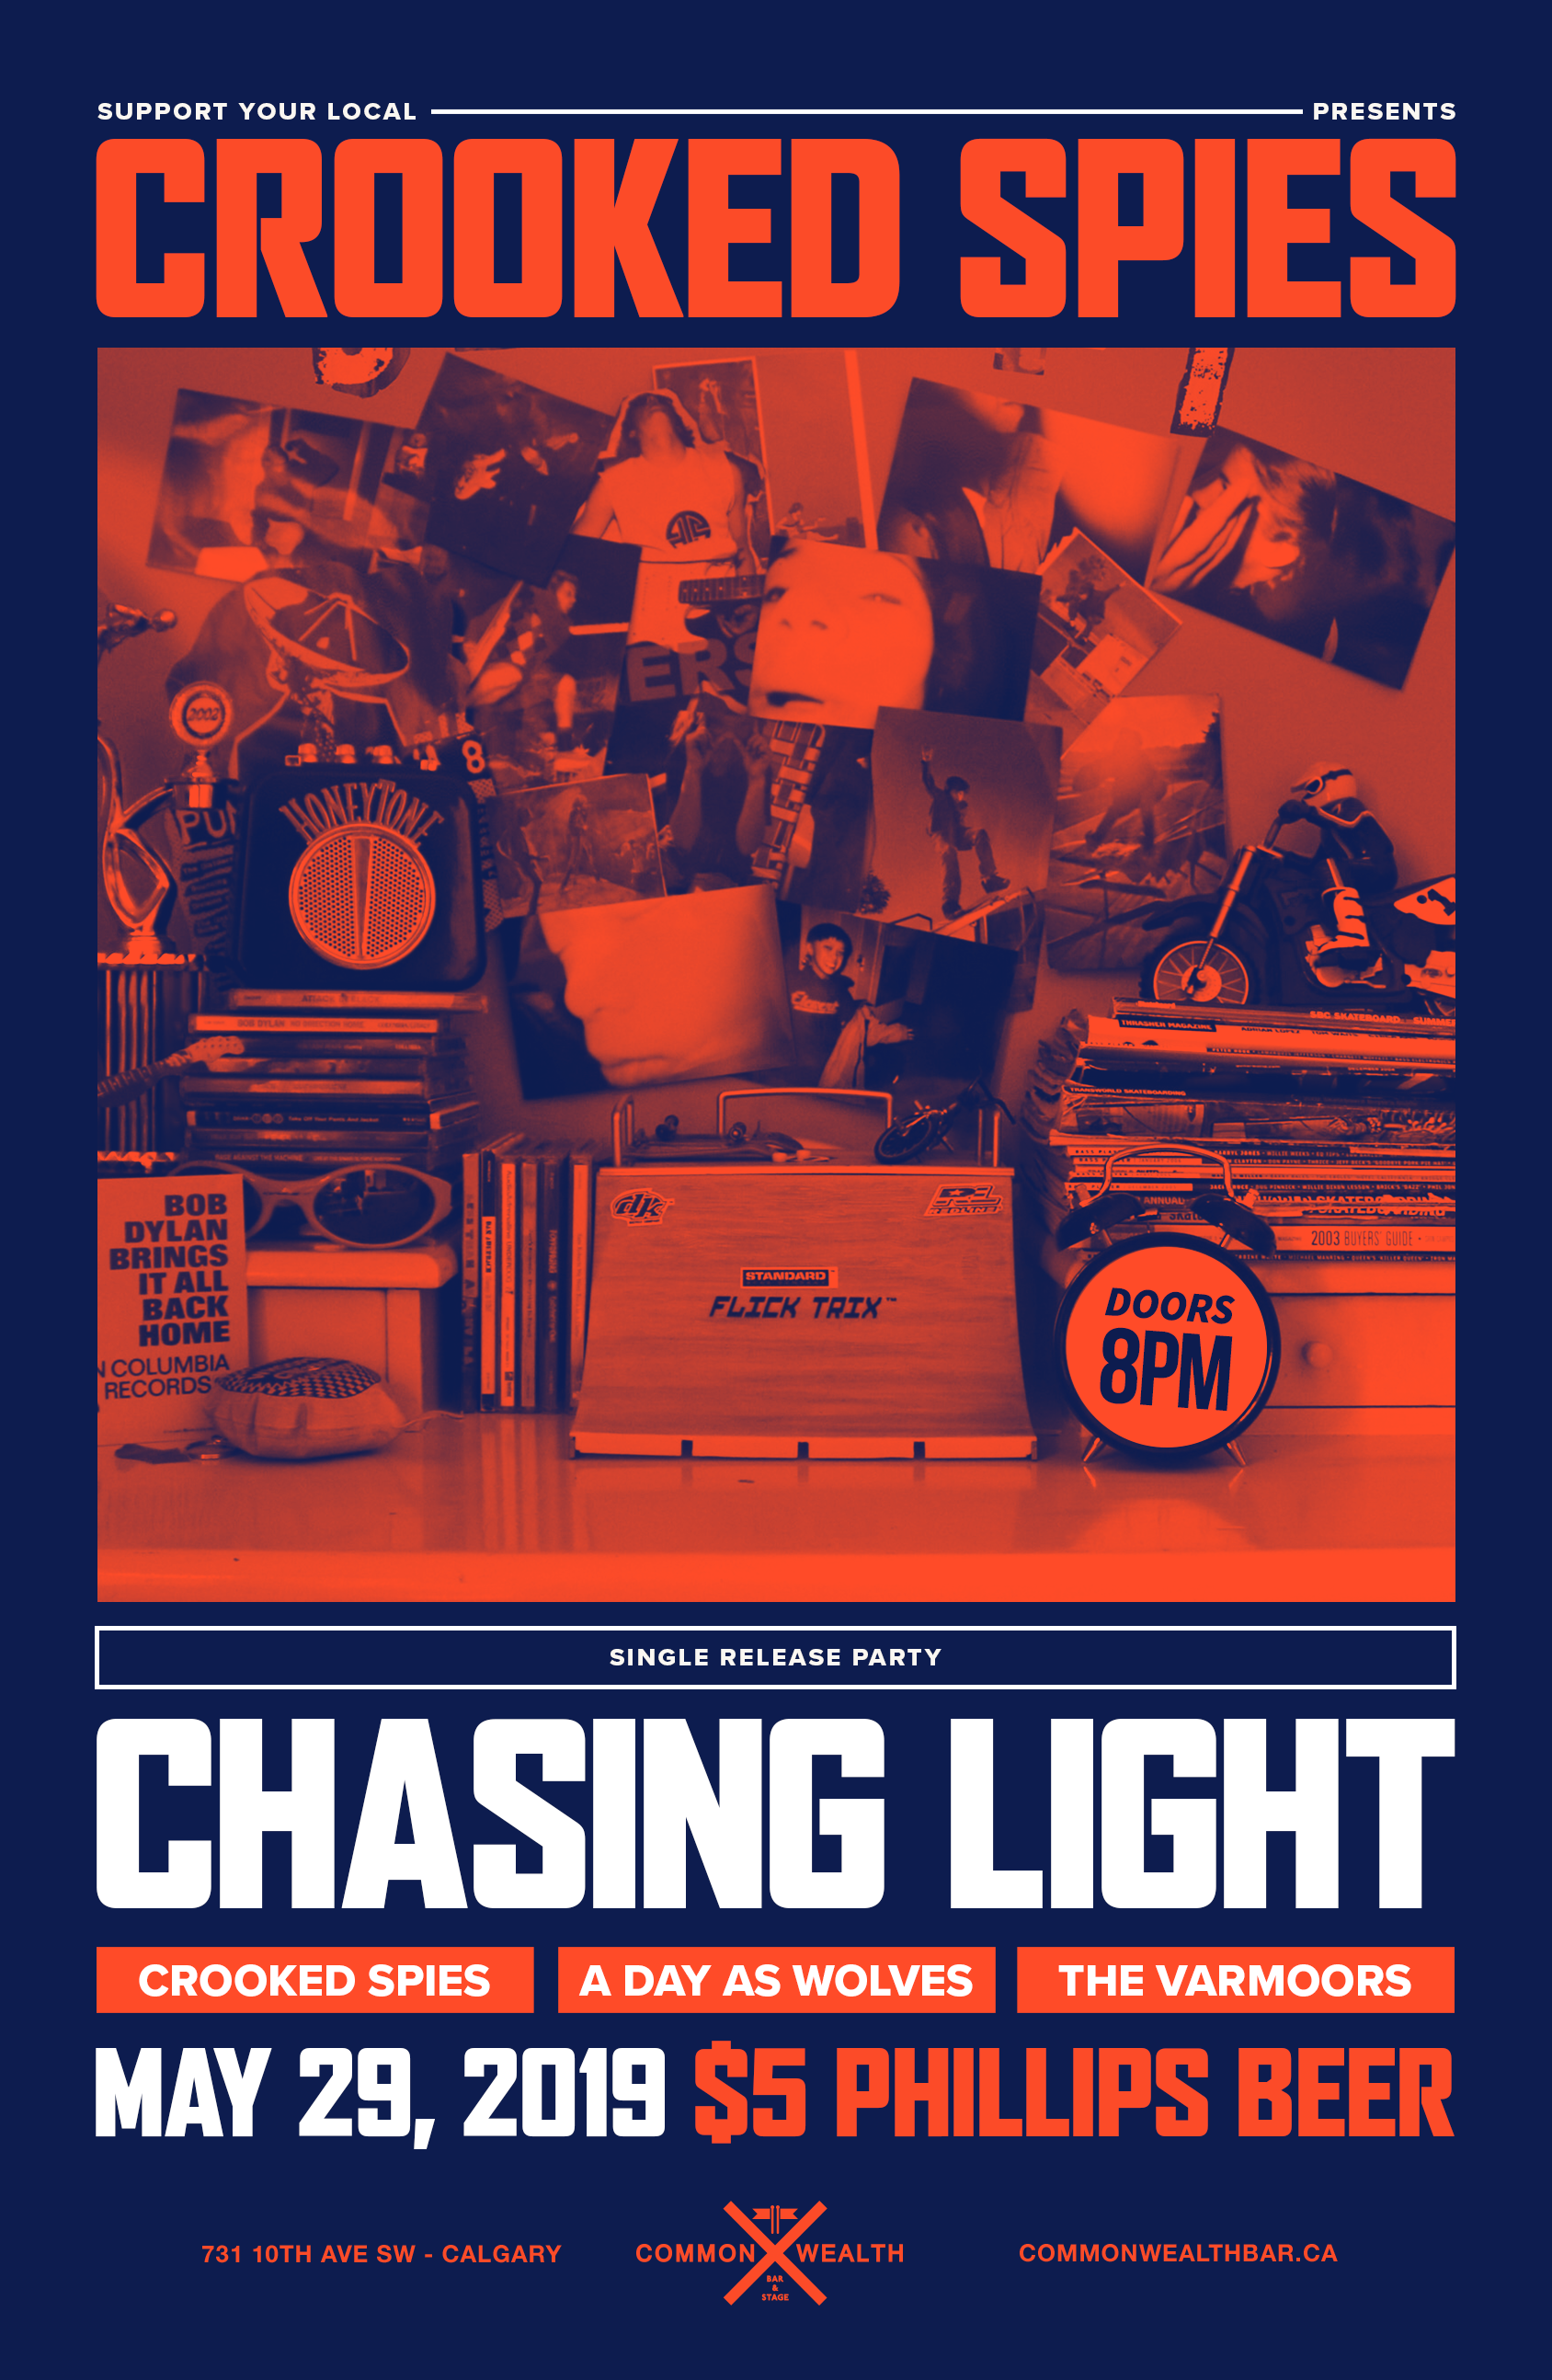 Wednesday, May 29th, Chasing Light Single Release @ Commonwealth Bar & Stage w/ A Day as Wolves & The Varmoors -